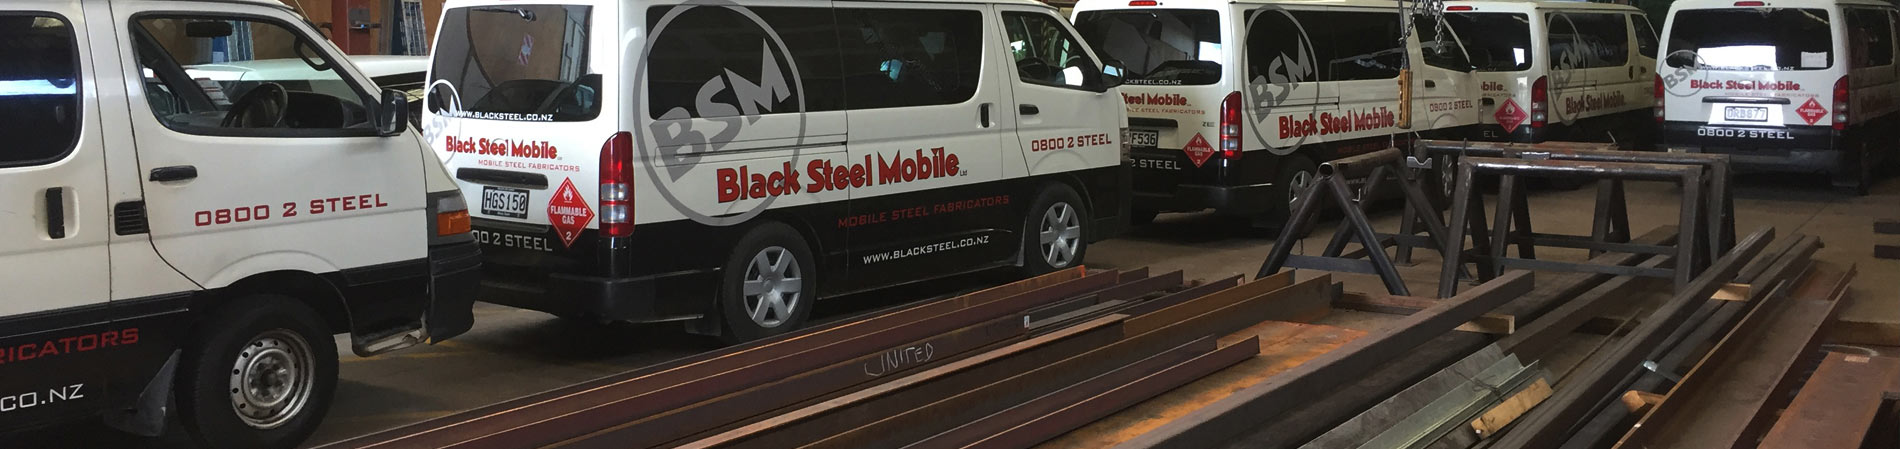 About Black Steel Mobile